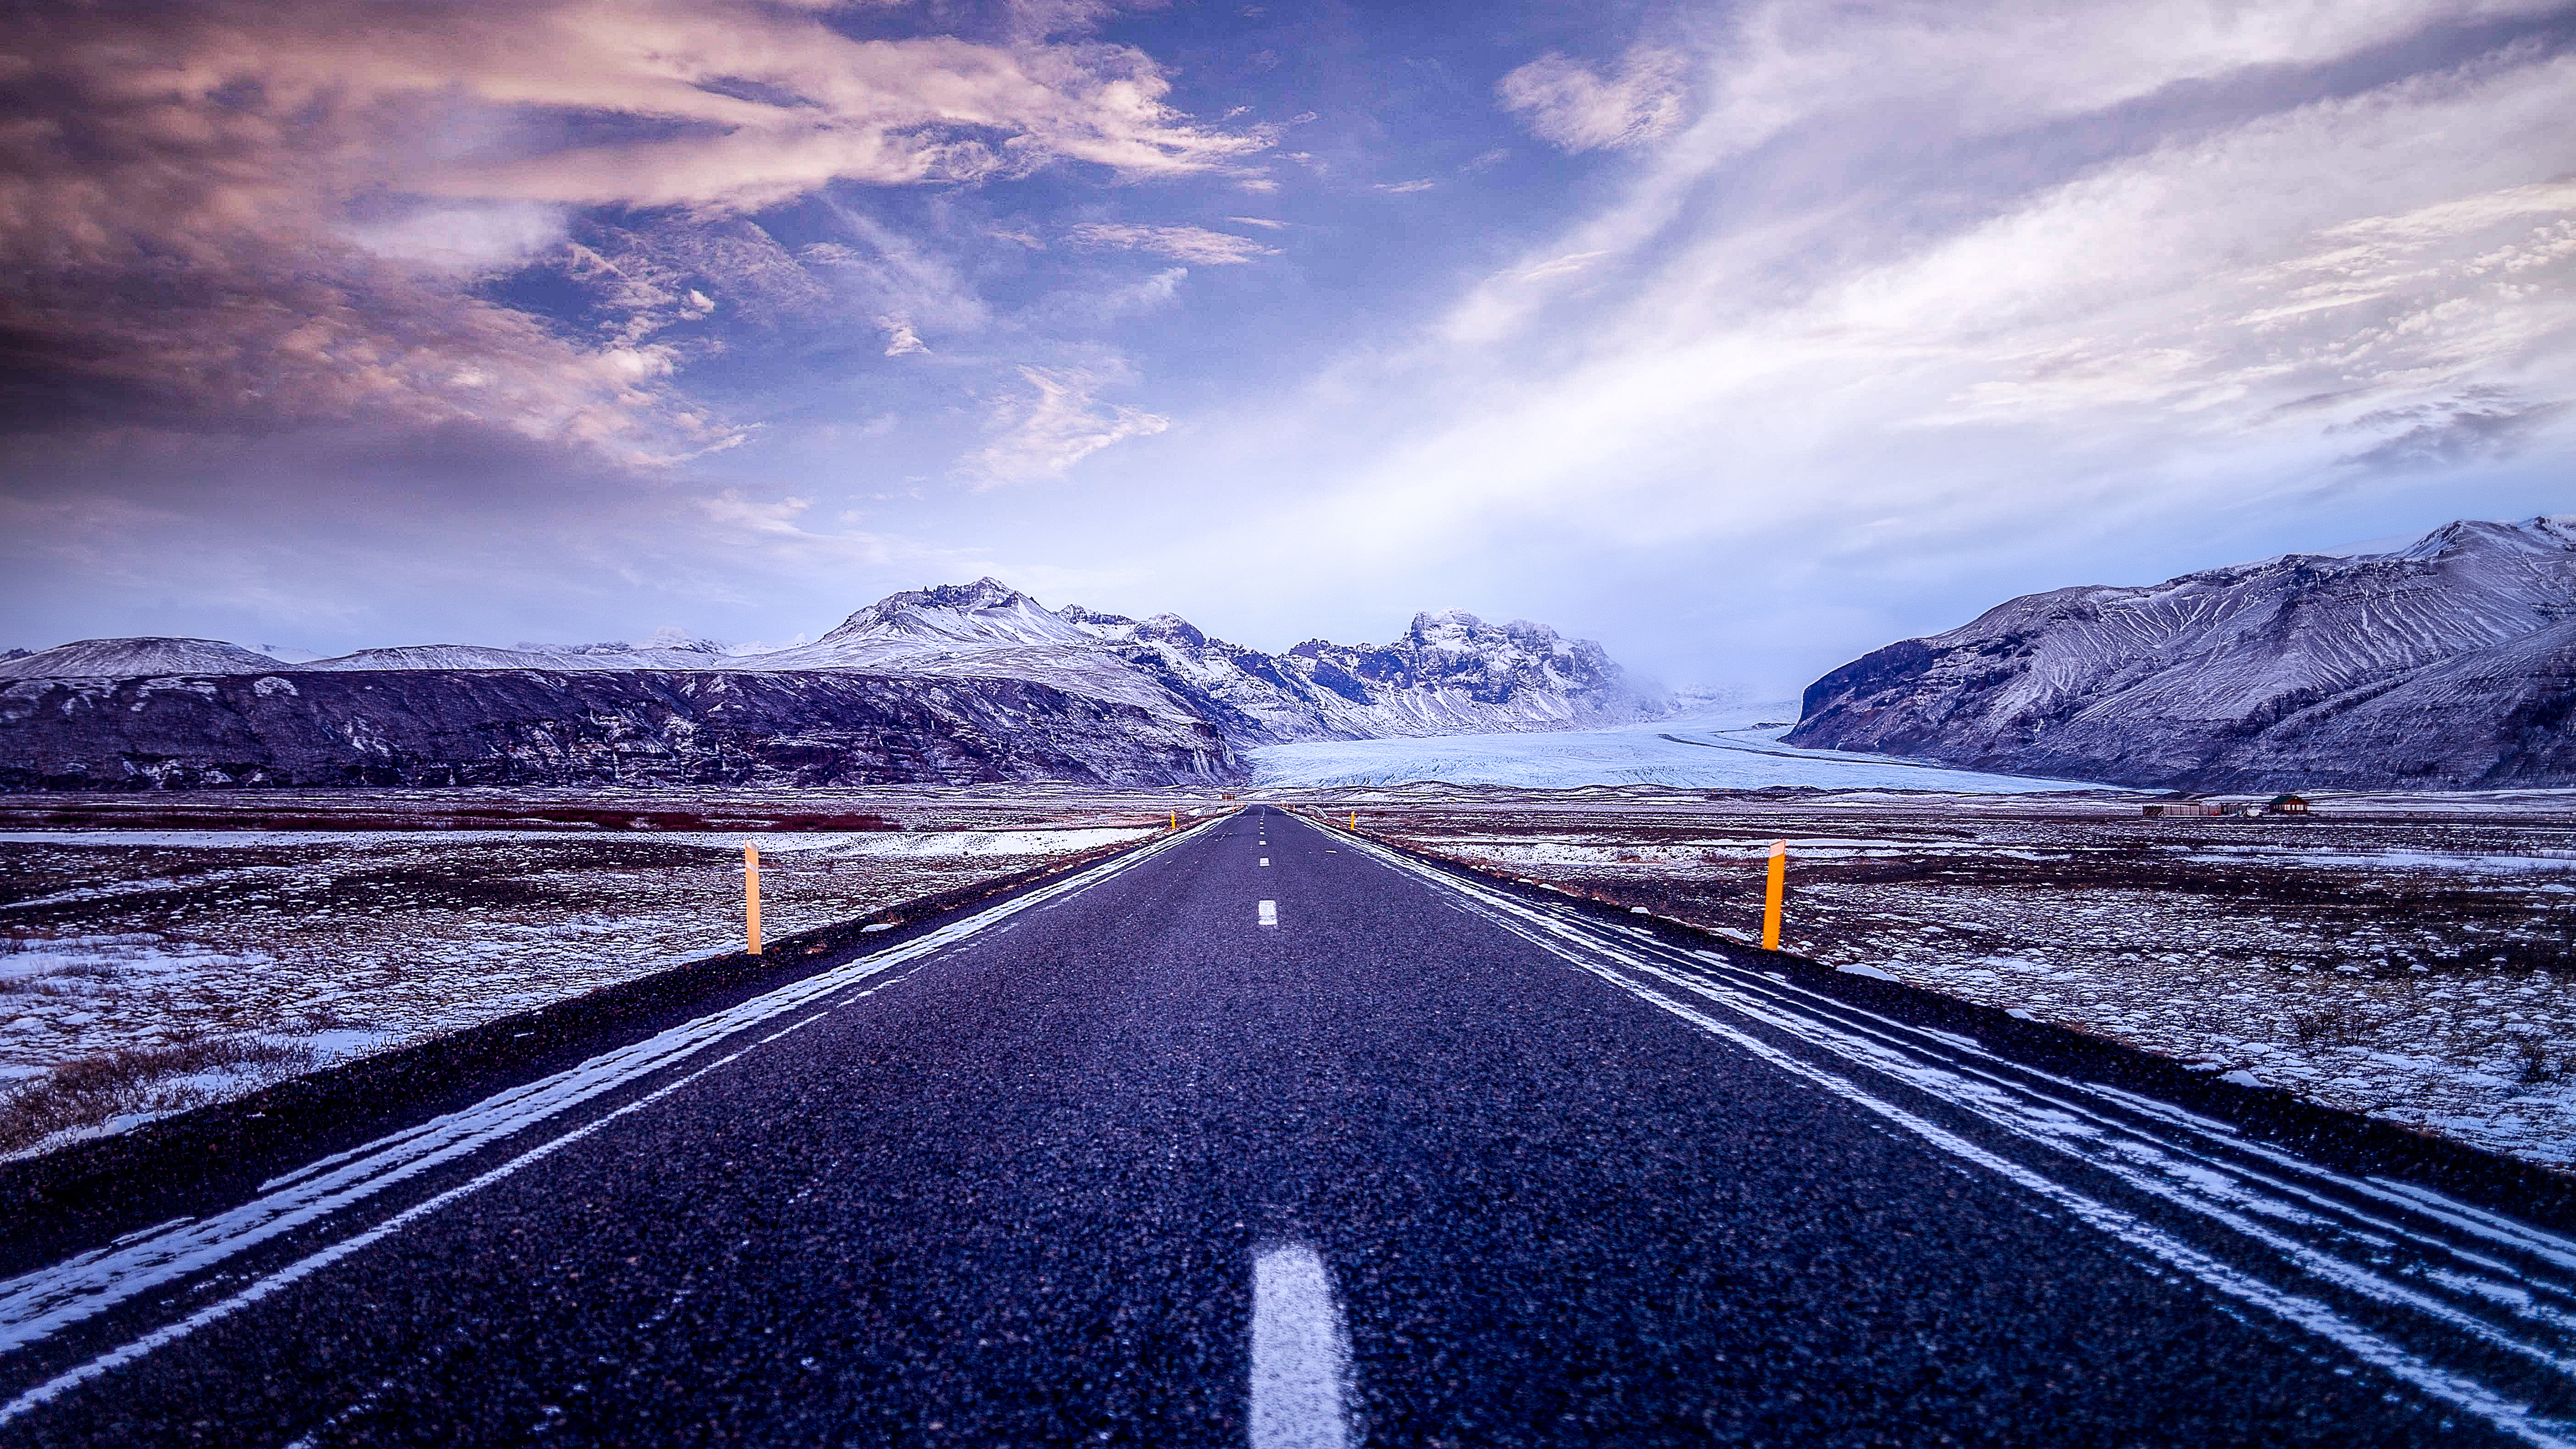 Road to north 4k wallpapers hd wallpapers - Wallpaper hd 4k ...